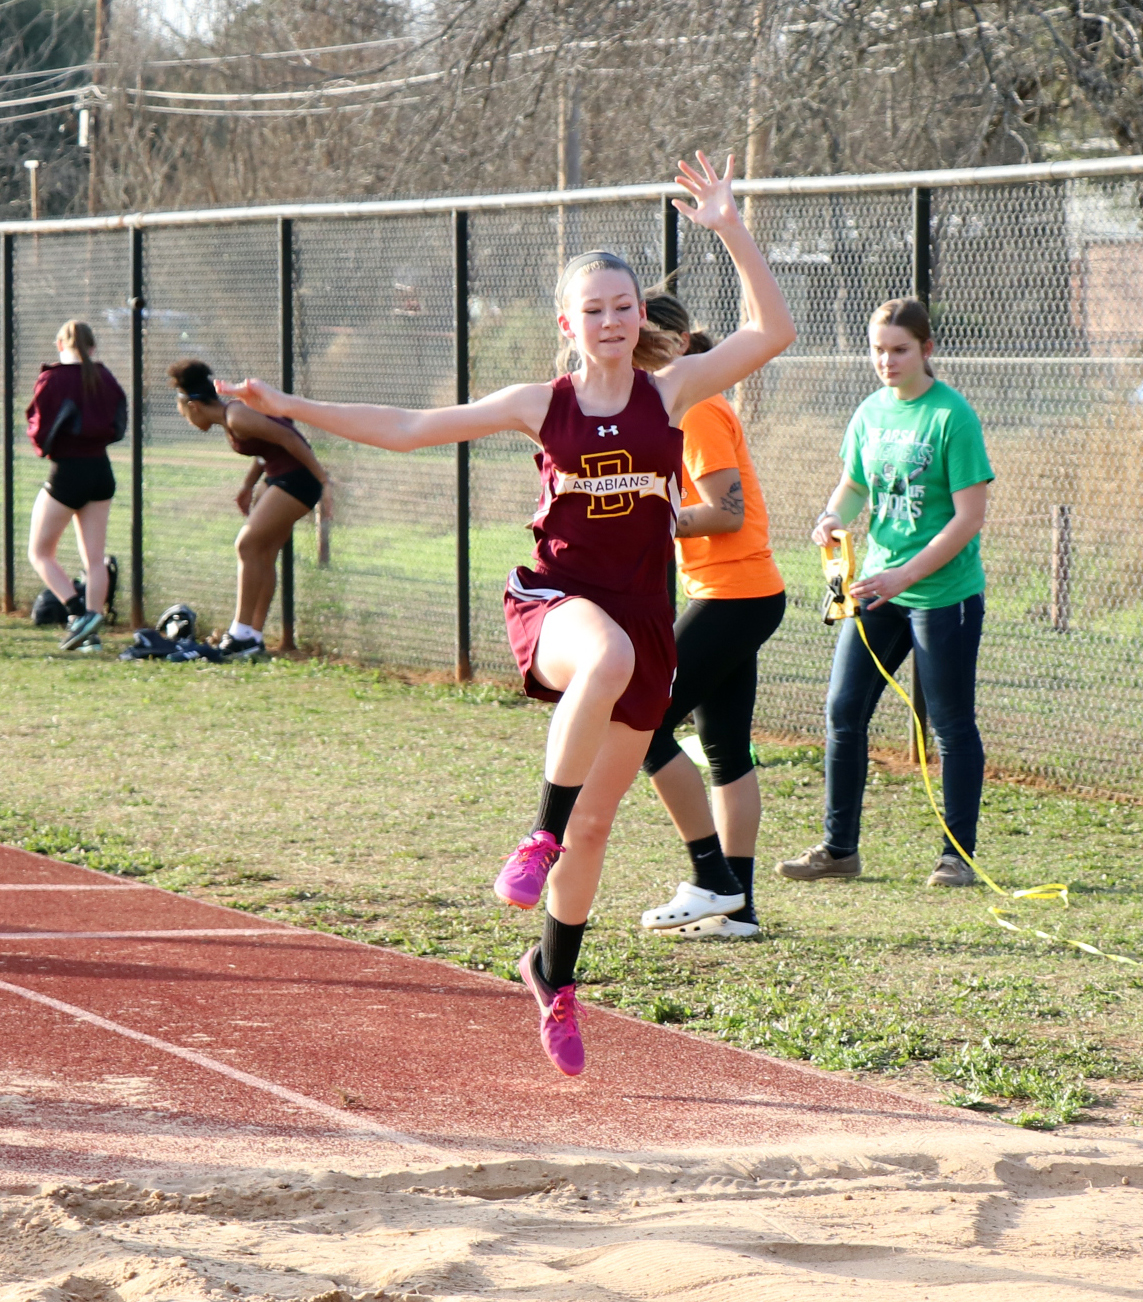 JV track teams up and running